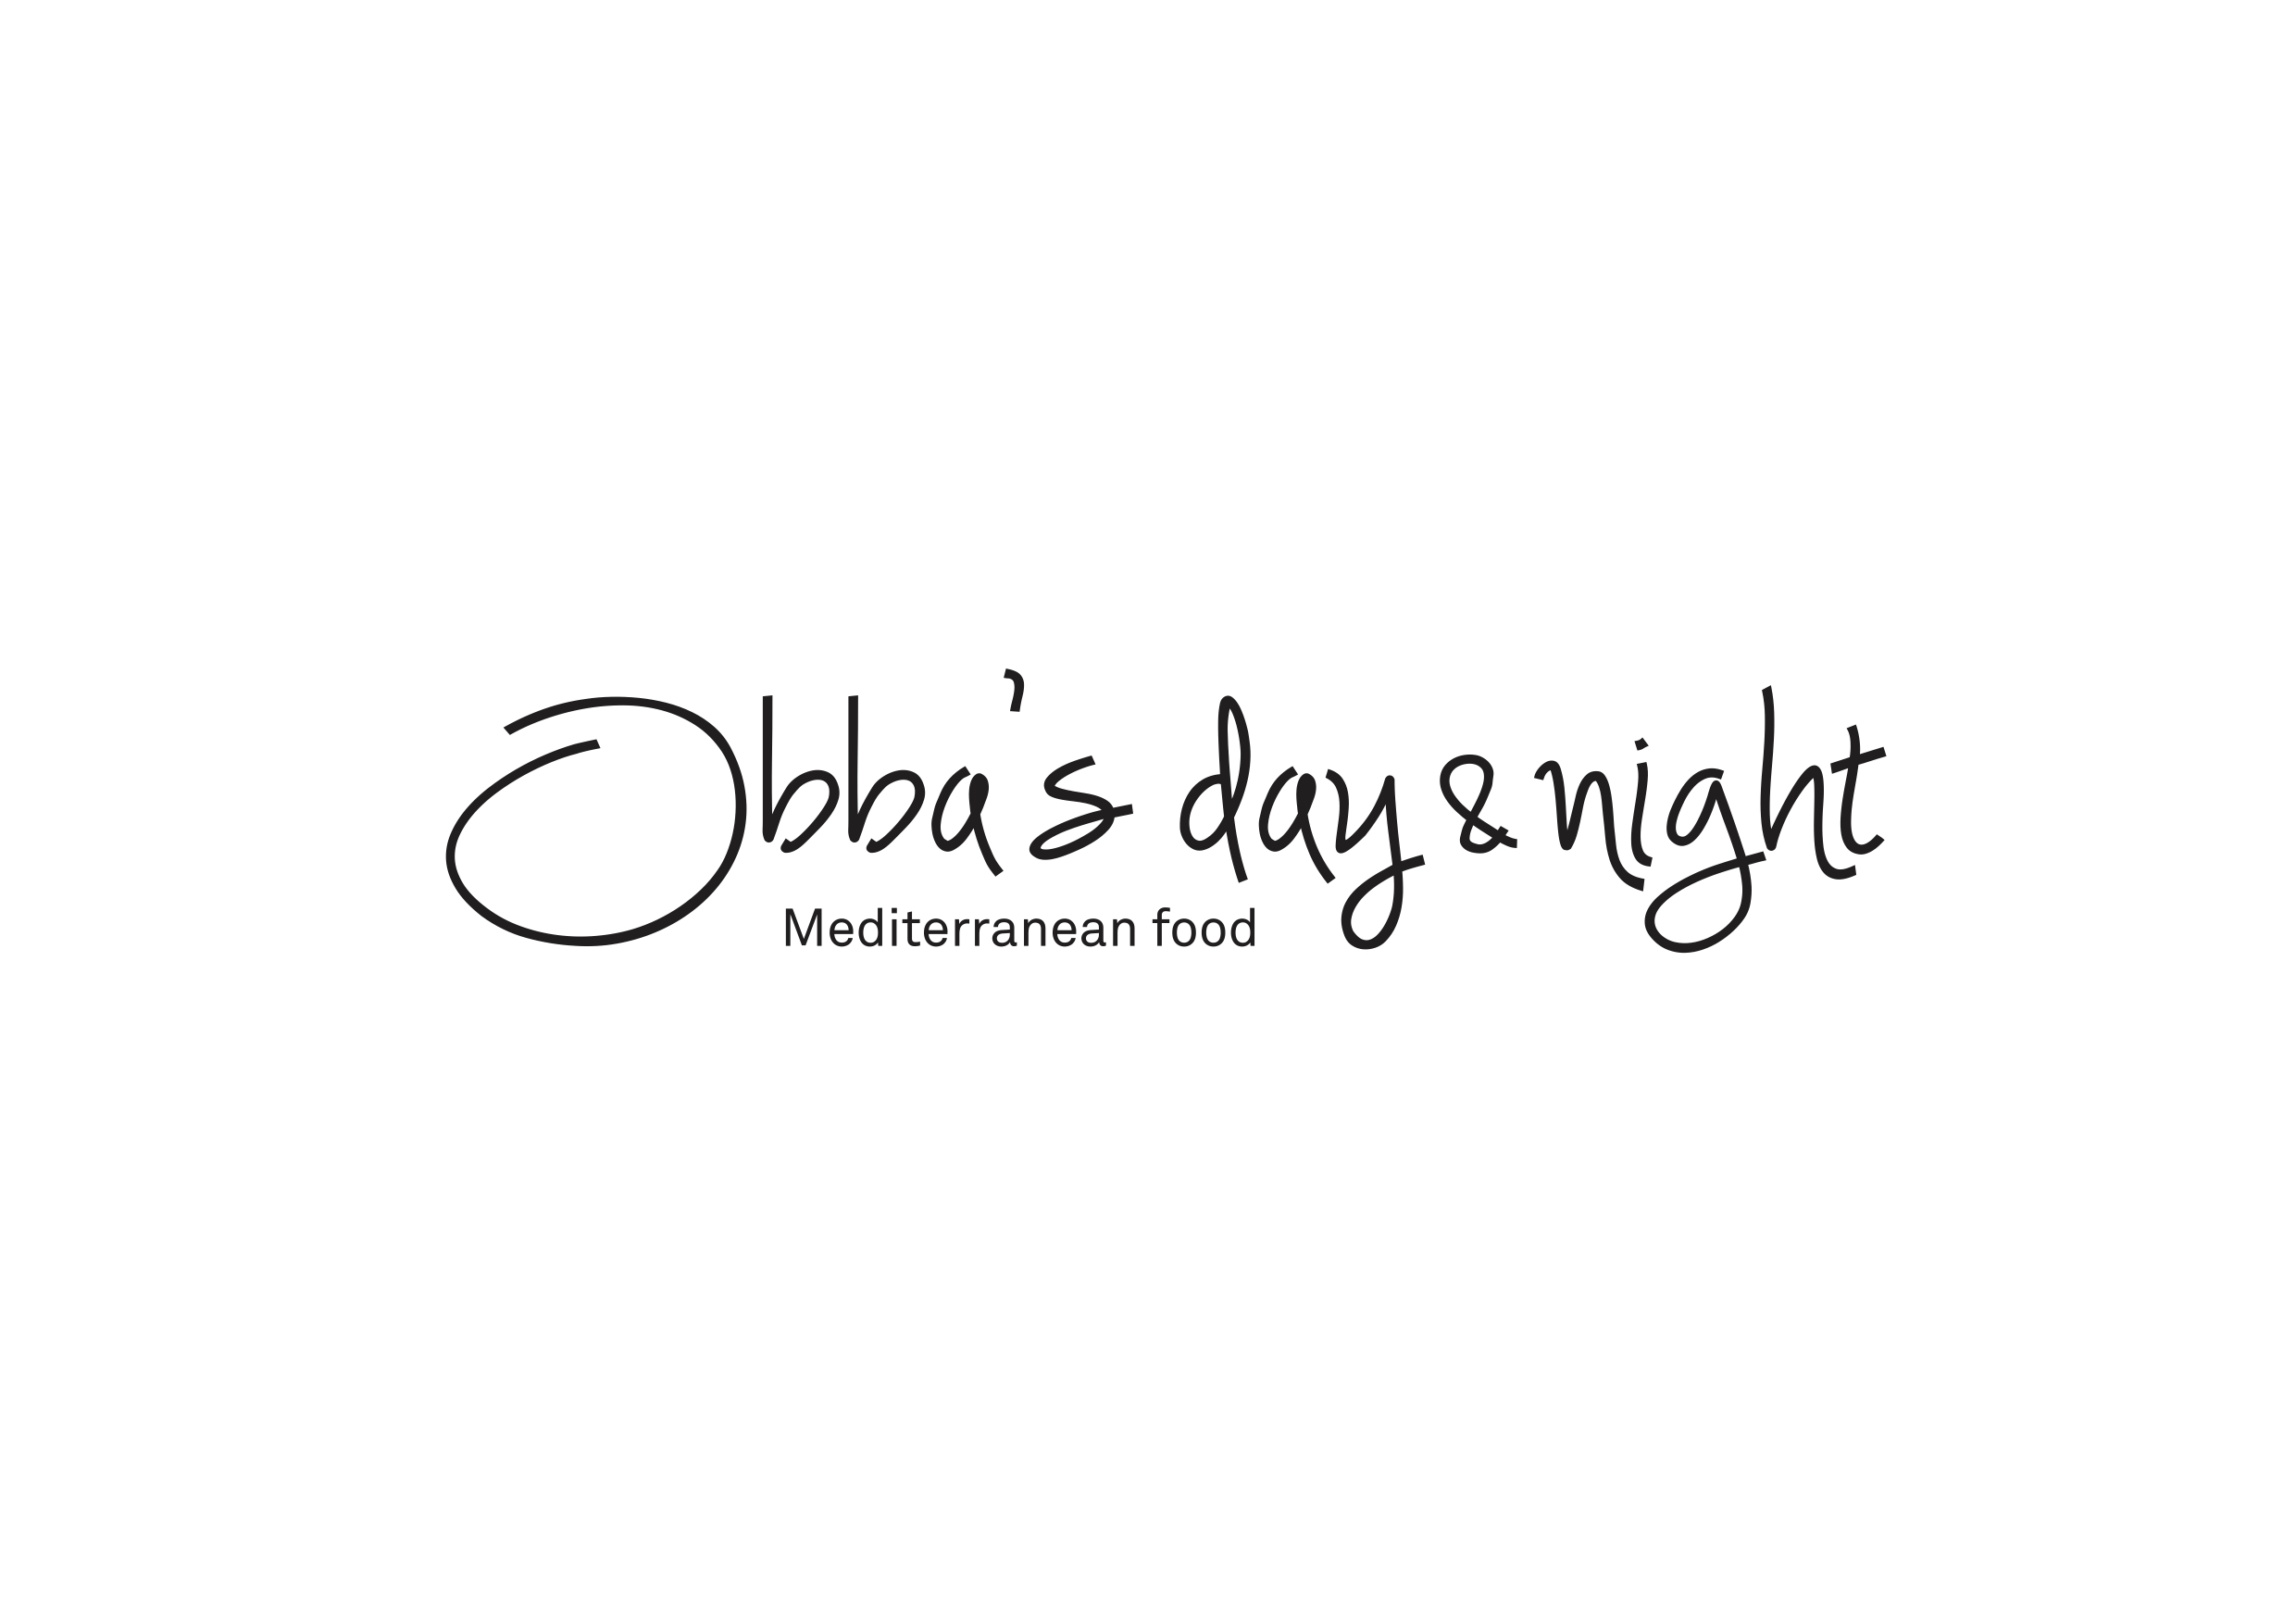 Obbas Day & Night